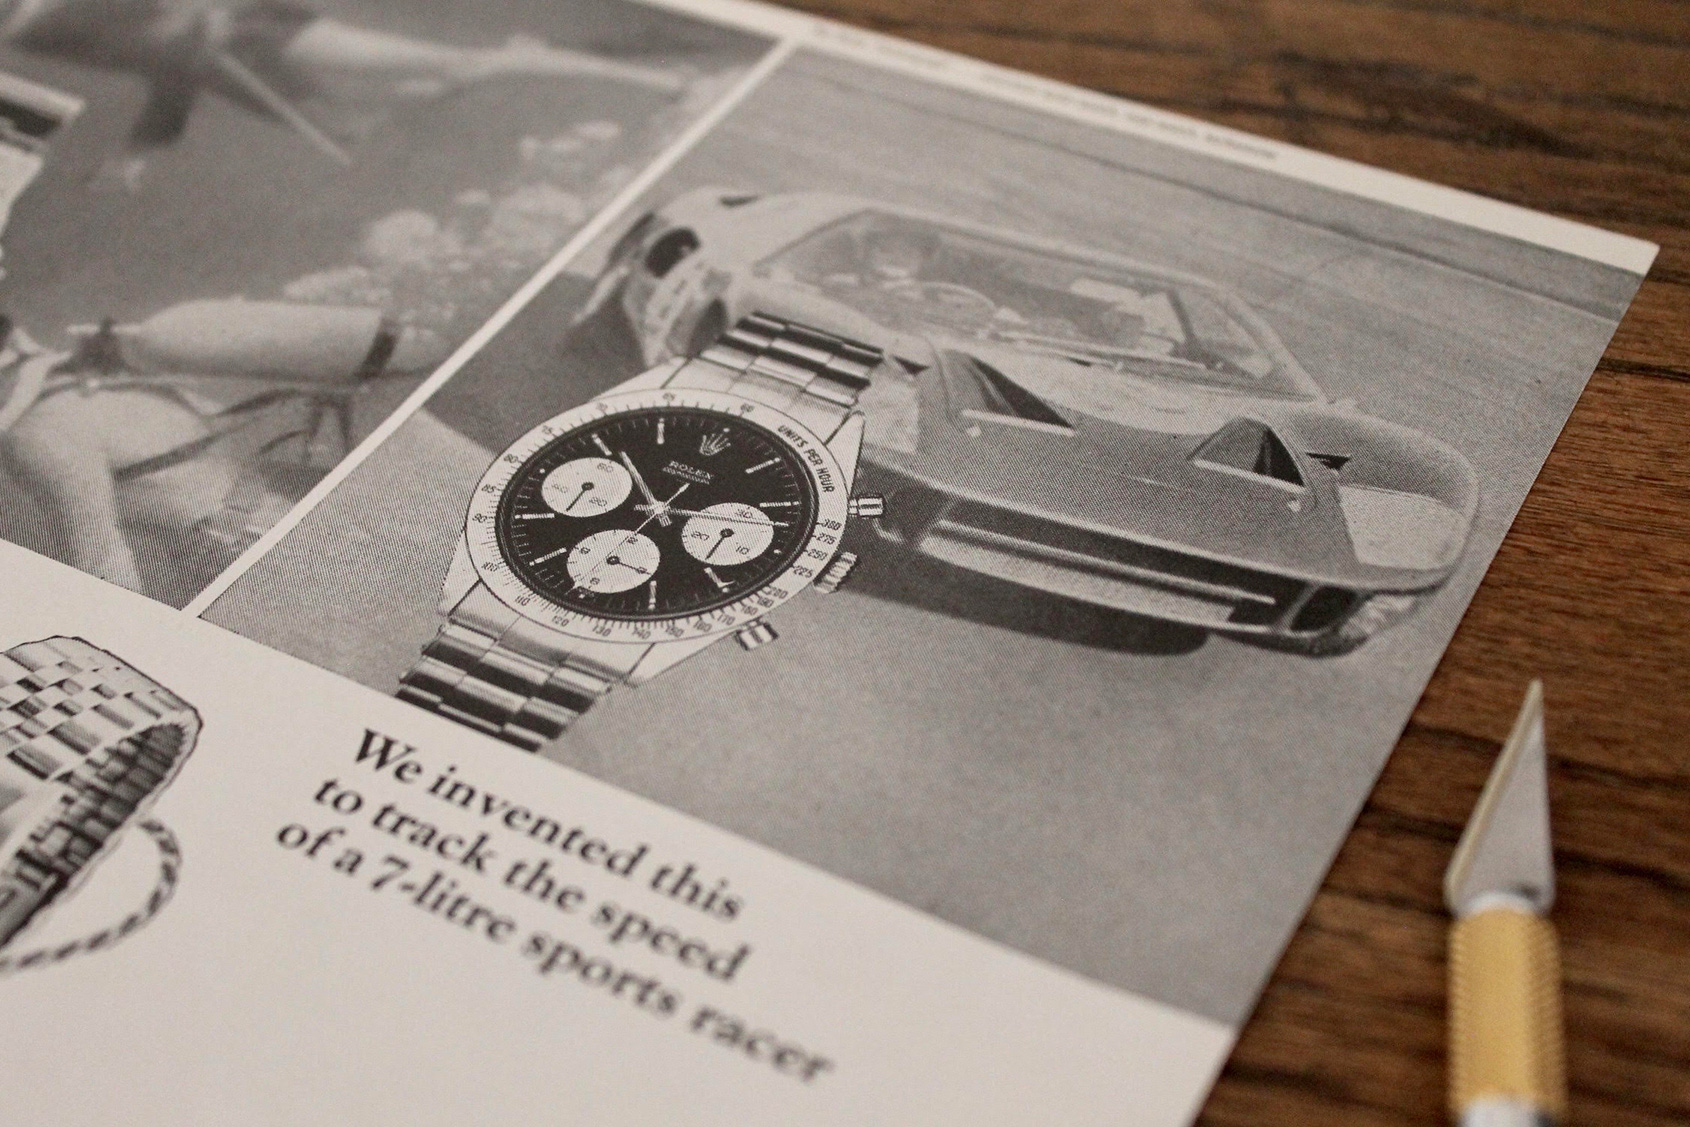 6 of the best vintage watch ads, according to @adpatina